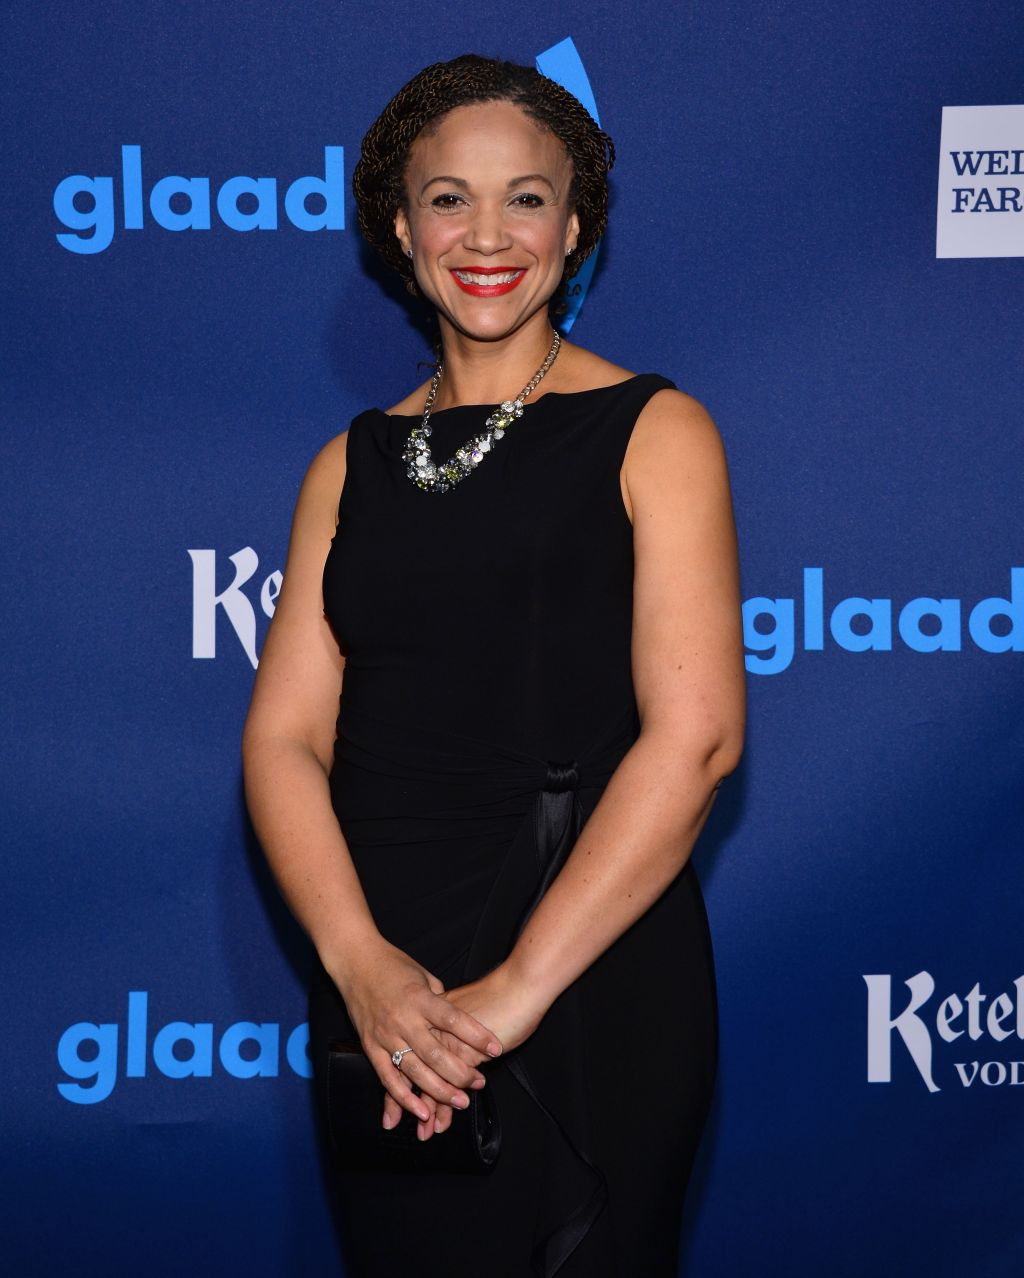 Red Carpet - 24th Annual GLAAD Media Awards